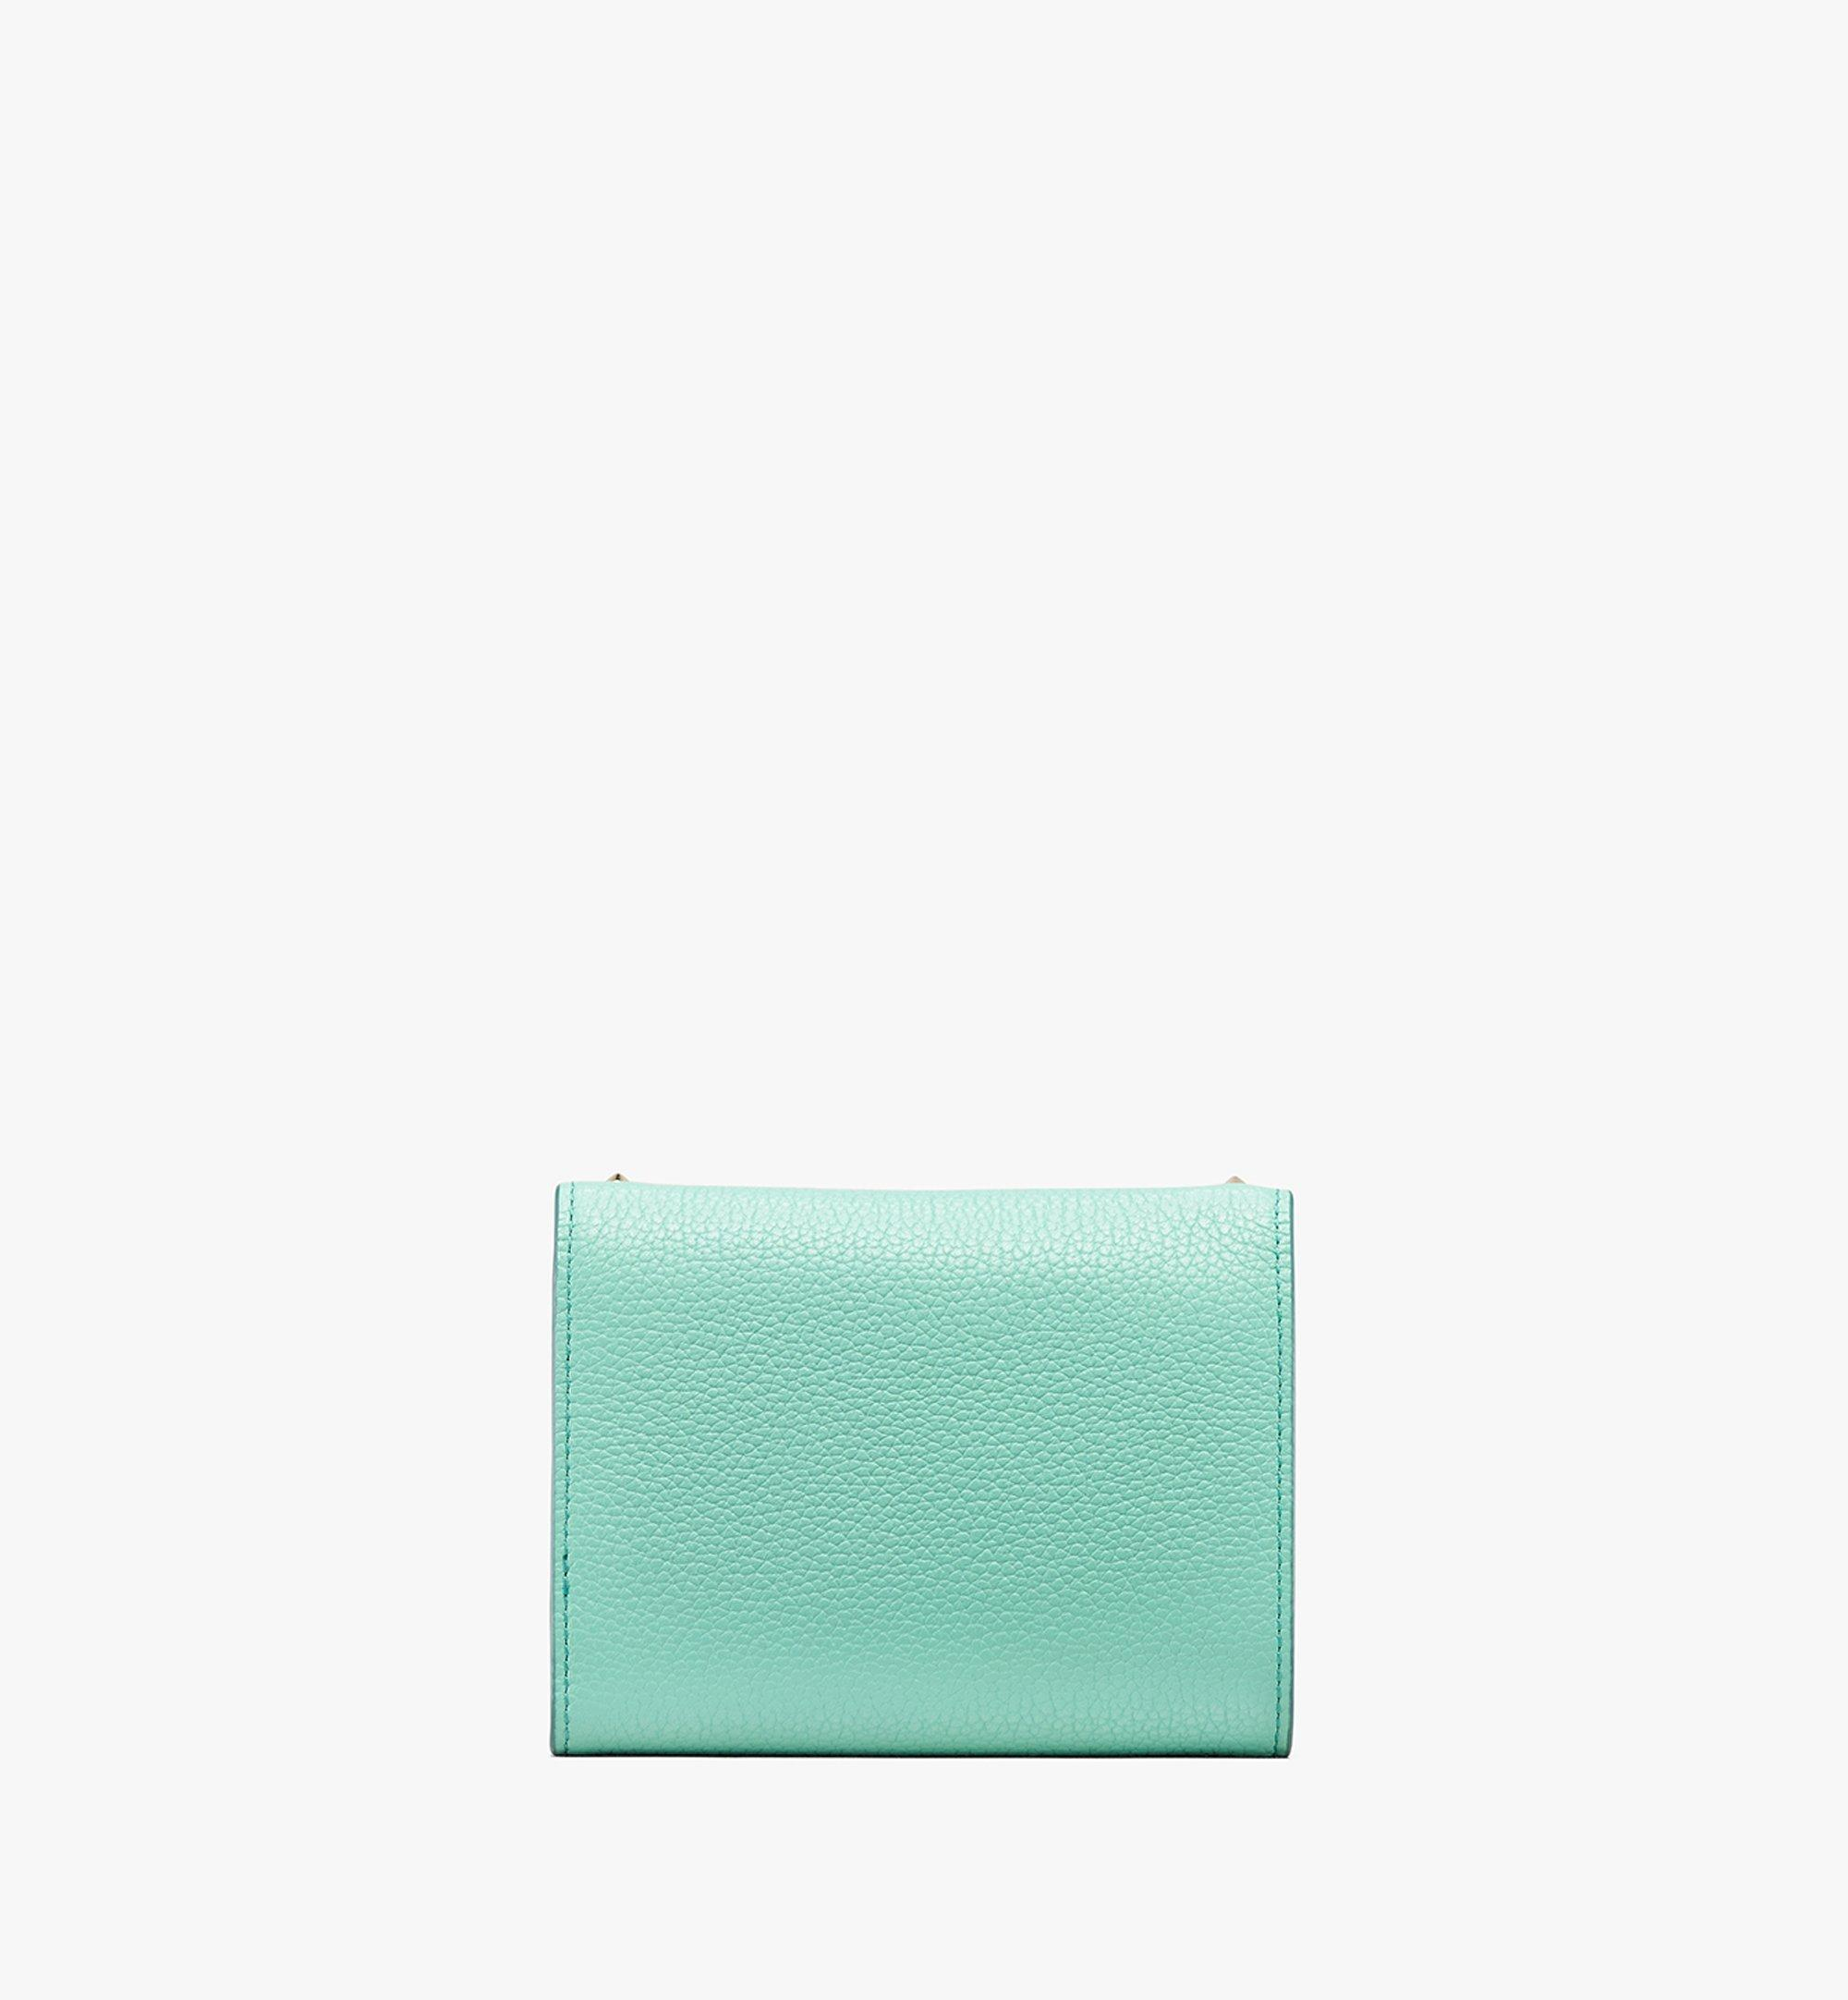 MCM Patricia Three-Fold Wallet in Studded Park Ave Leather Green MYS9APA93G7001 Alternate View 2